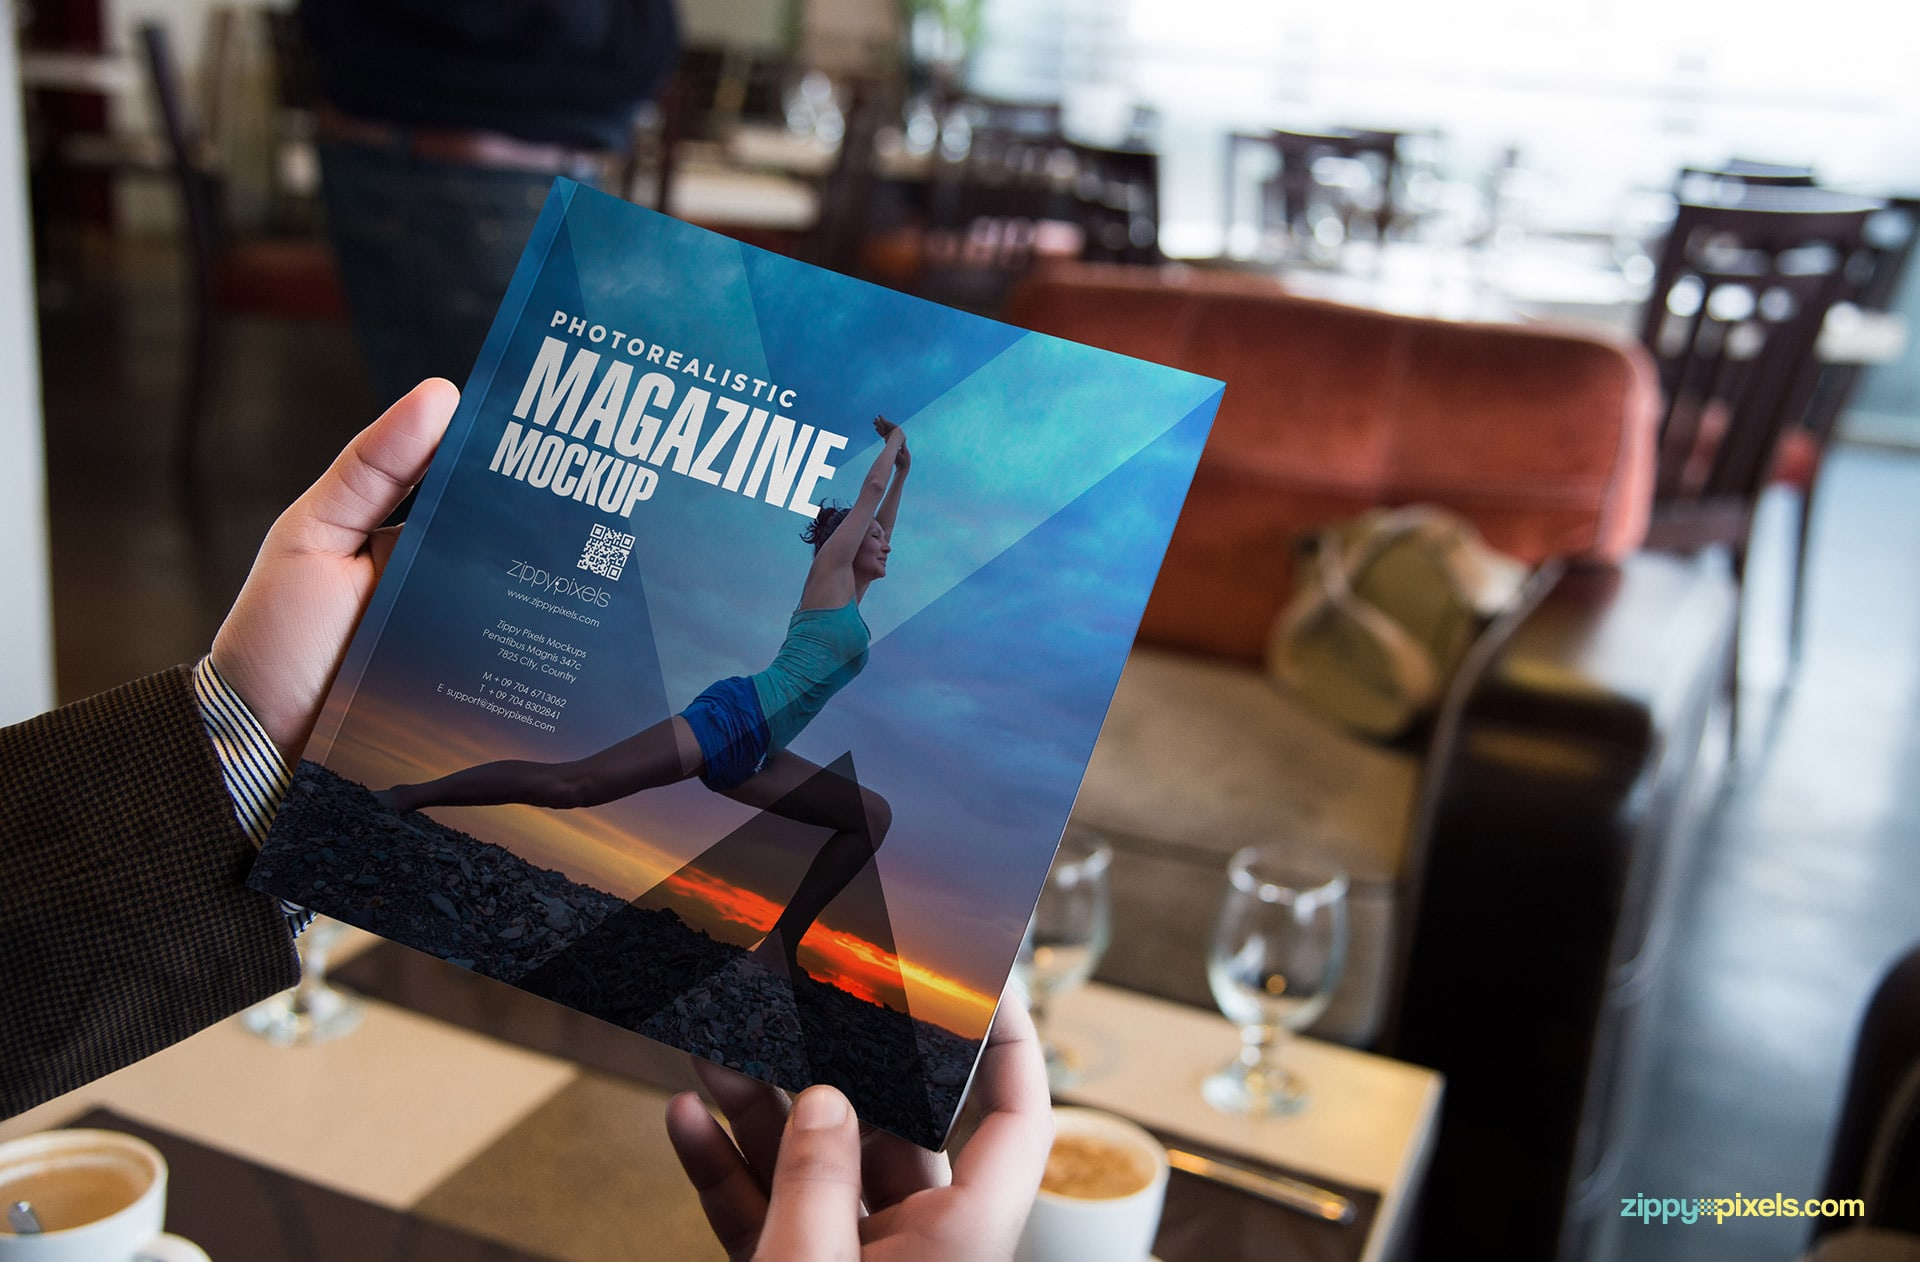 magazine mocks with shadows, perspectives & effects.